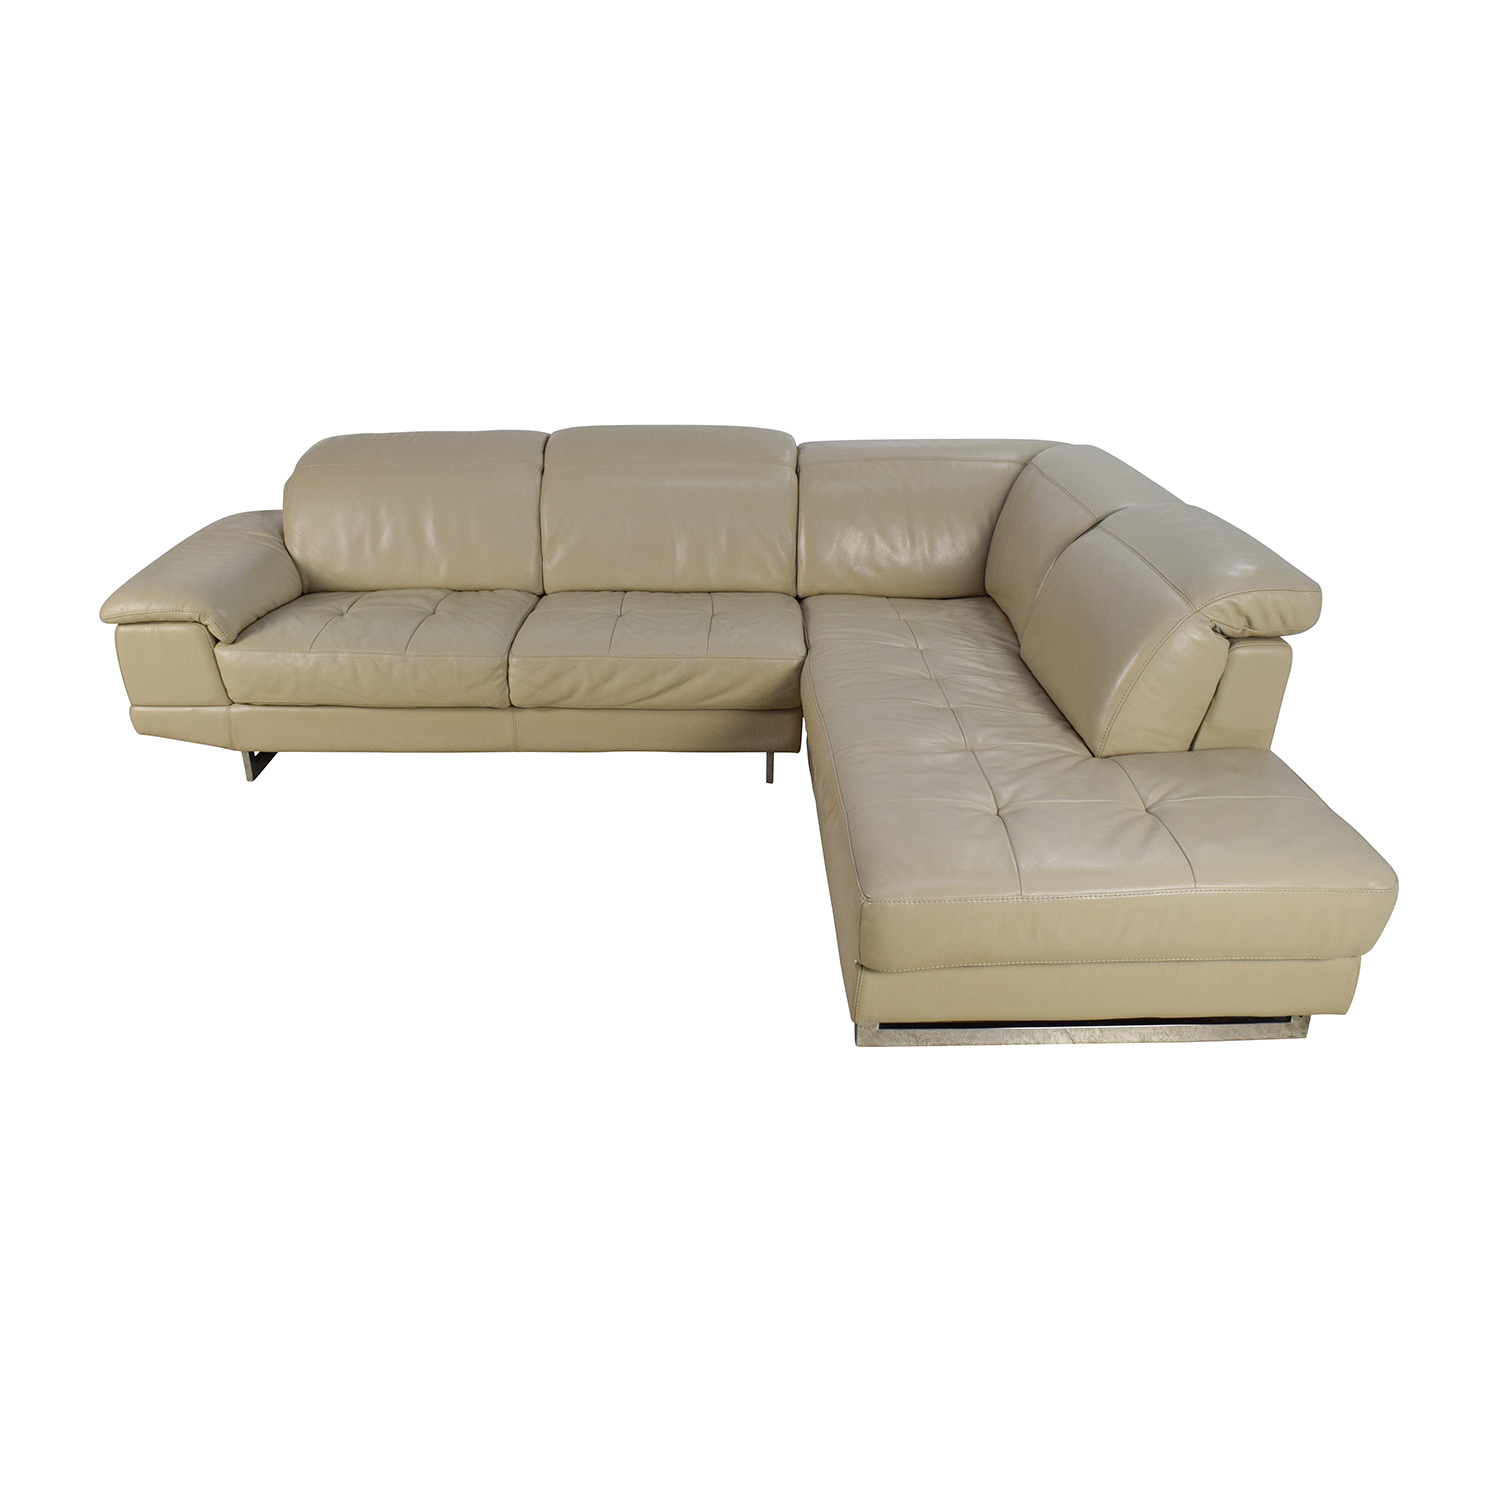 Tremendous 83 Off Beige Italian Leather Couch With Adjustable Headrests Sofas Gmtry Best Dining Table And Chair Ideas Images Gmtryco